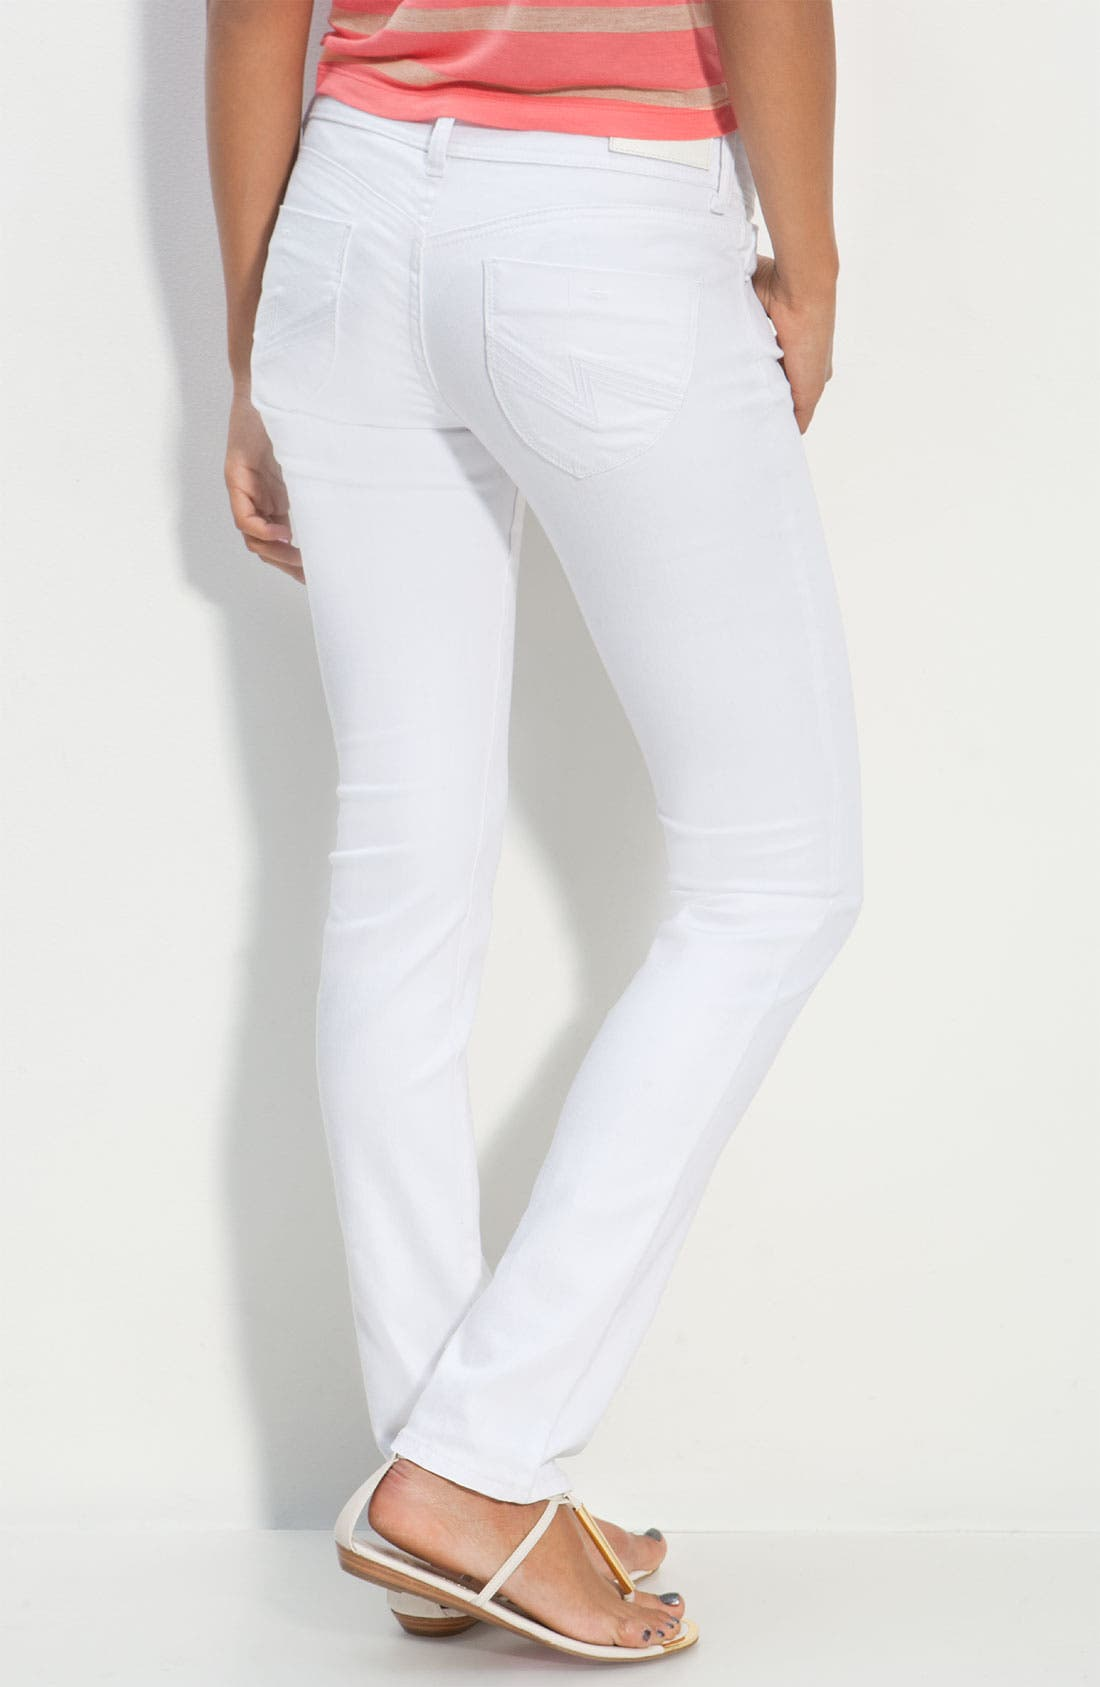 Alternate Image 1 Selected - S.O.N.G. Skinny Leg Jeans (Crystal White Wash) (Juniors)